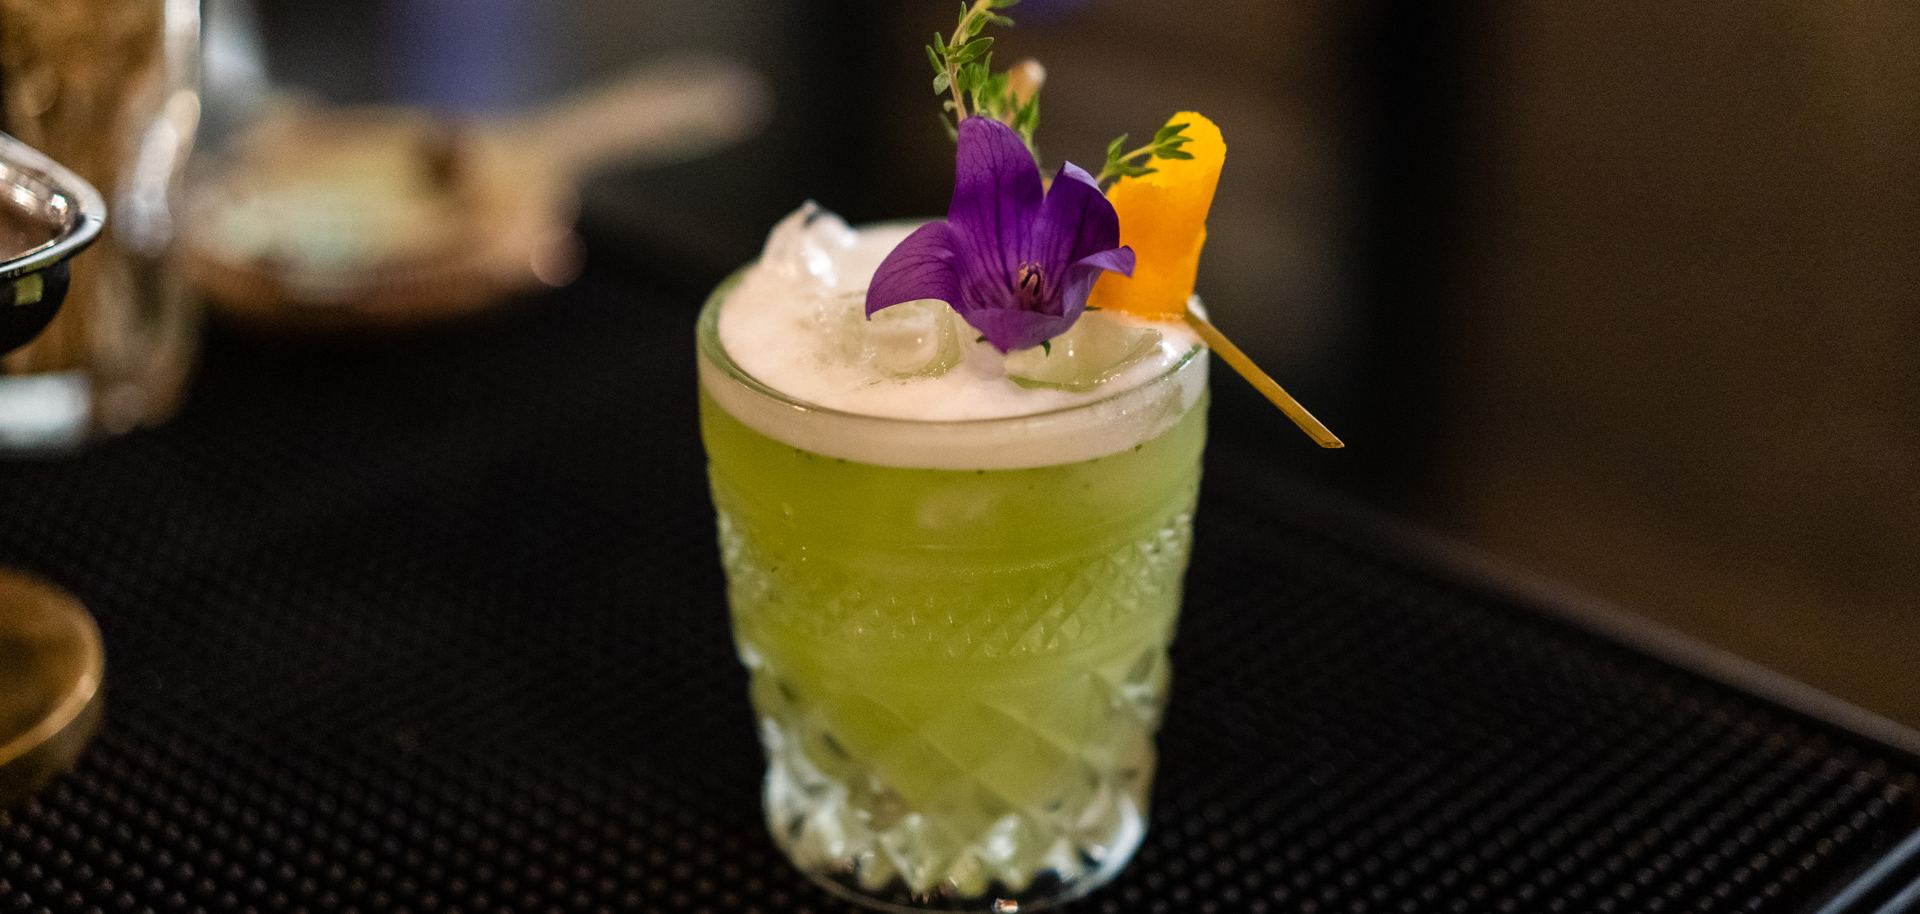 A green cocktail with an edible purple flower at Boston Title and Abstract in downtown Tulsa's Deco District.